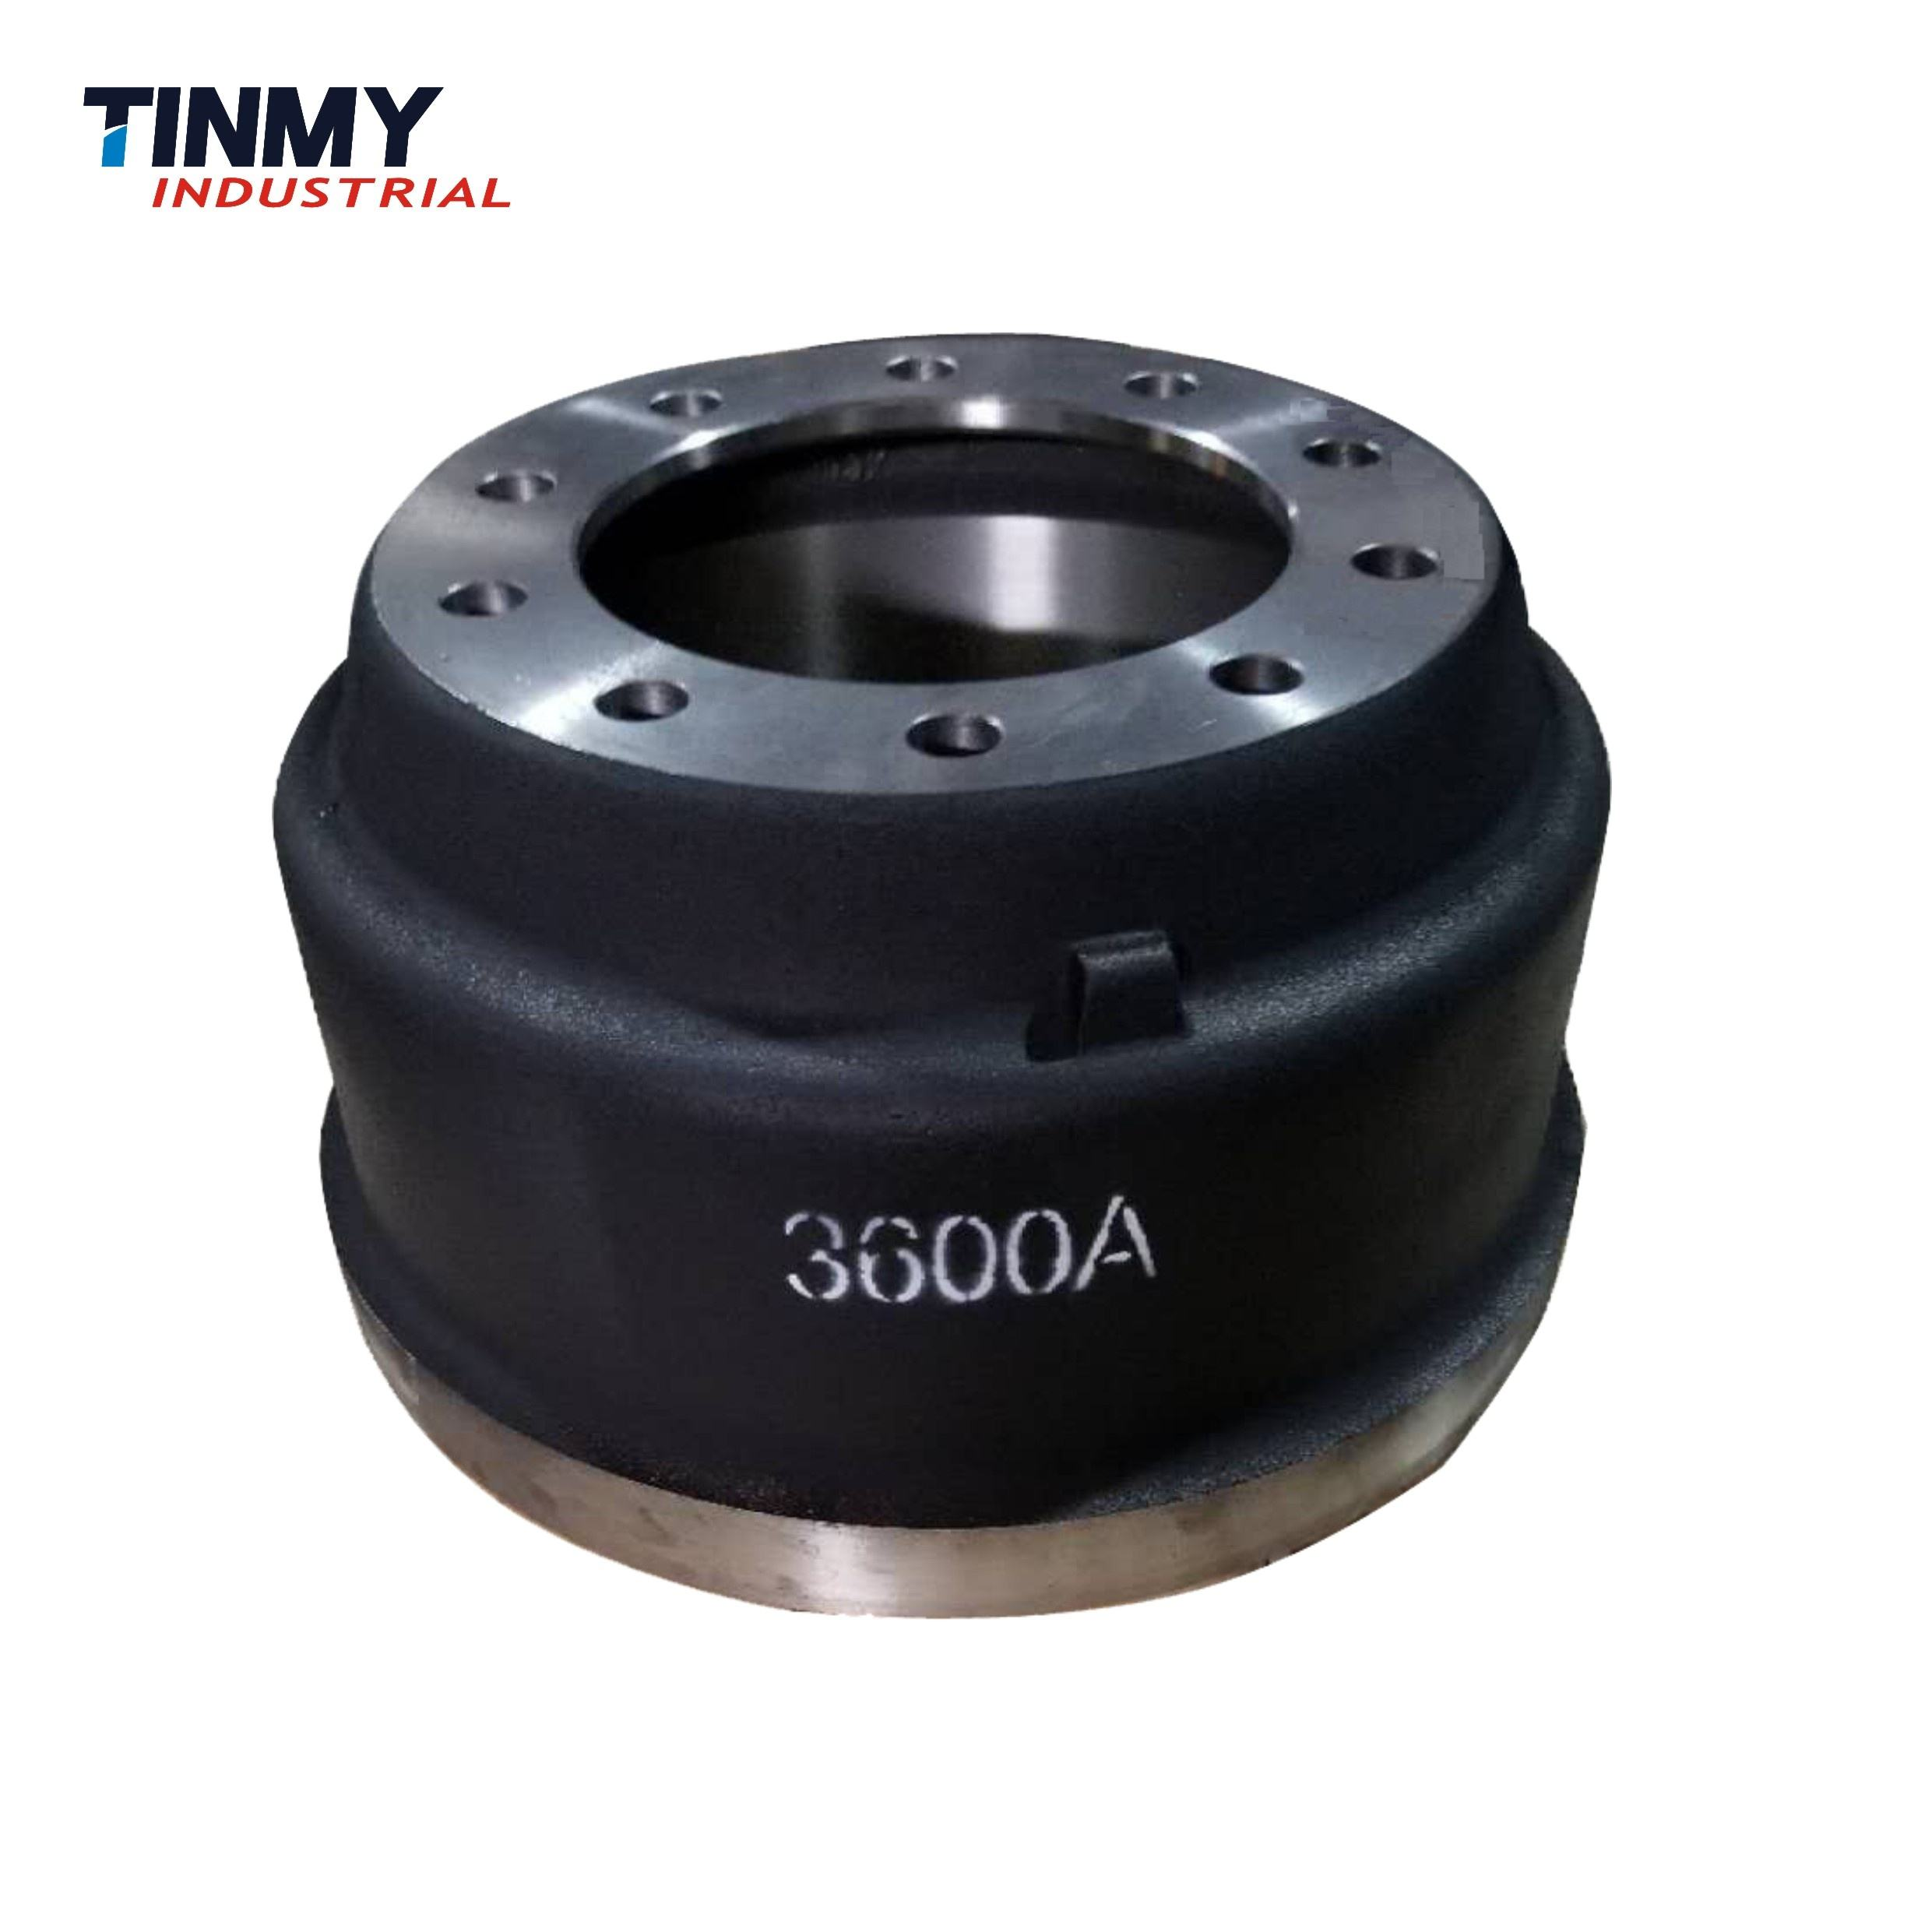 Brake Drum 3600A for truck and trailer